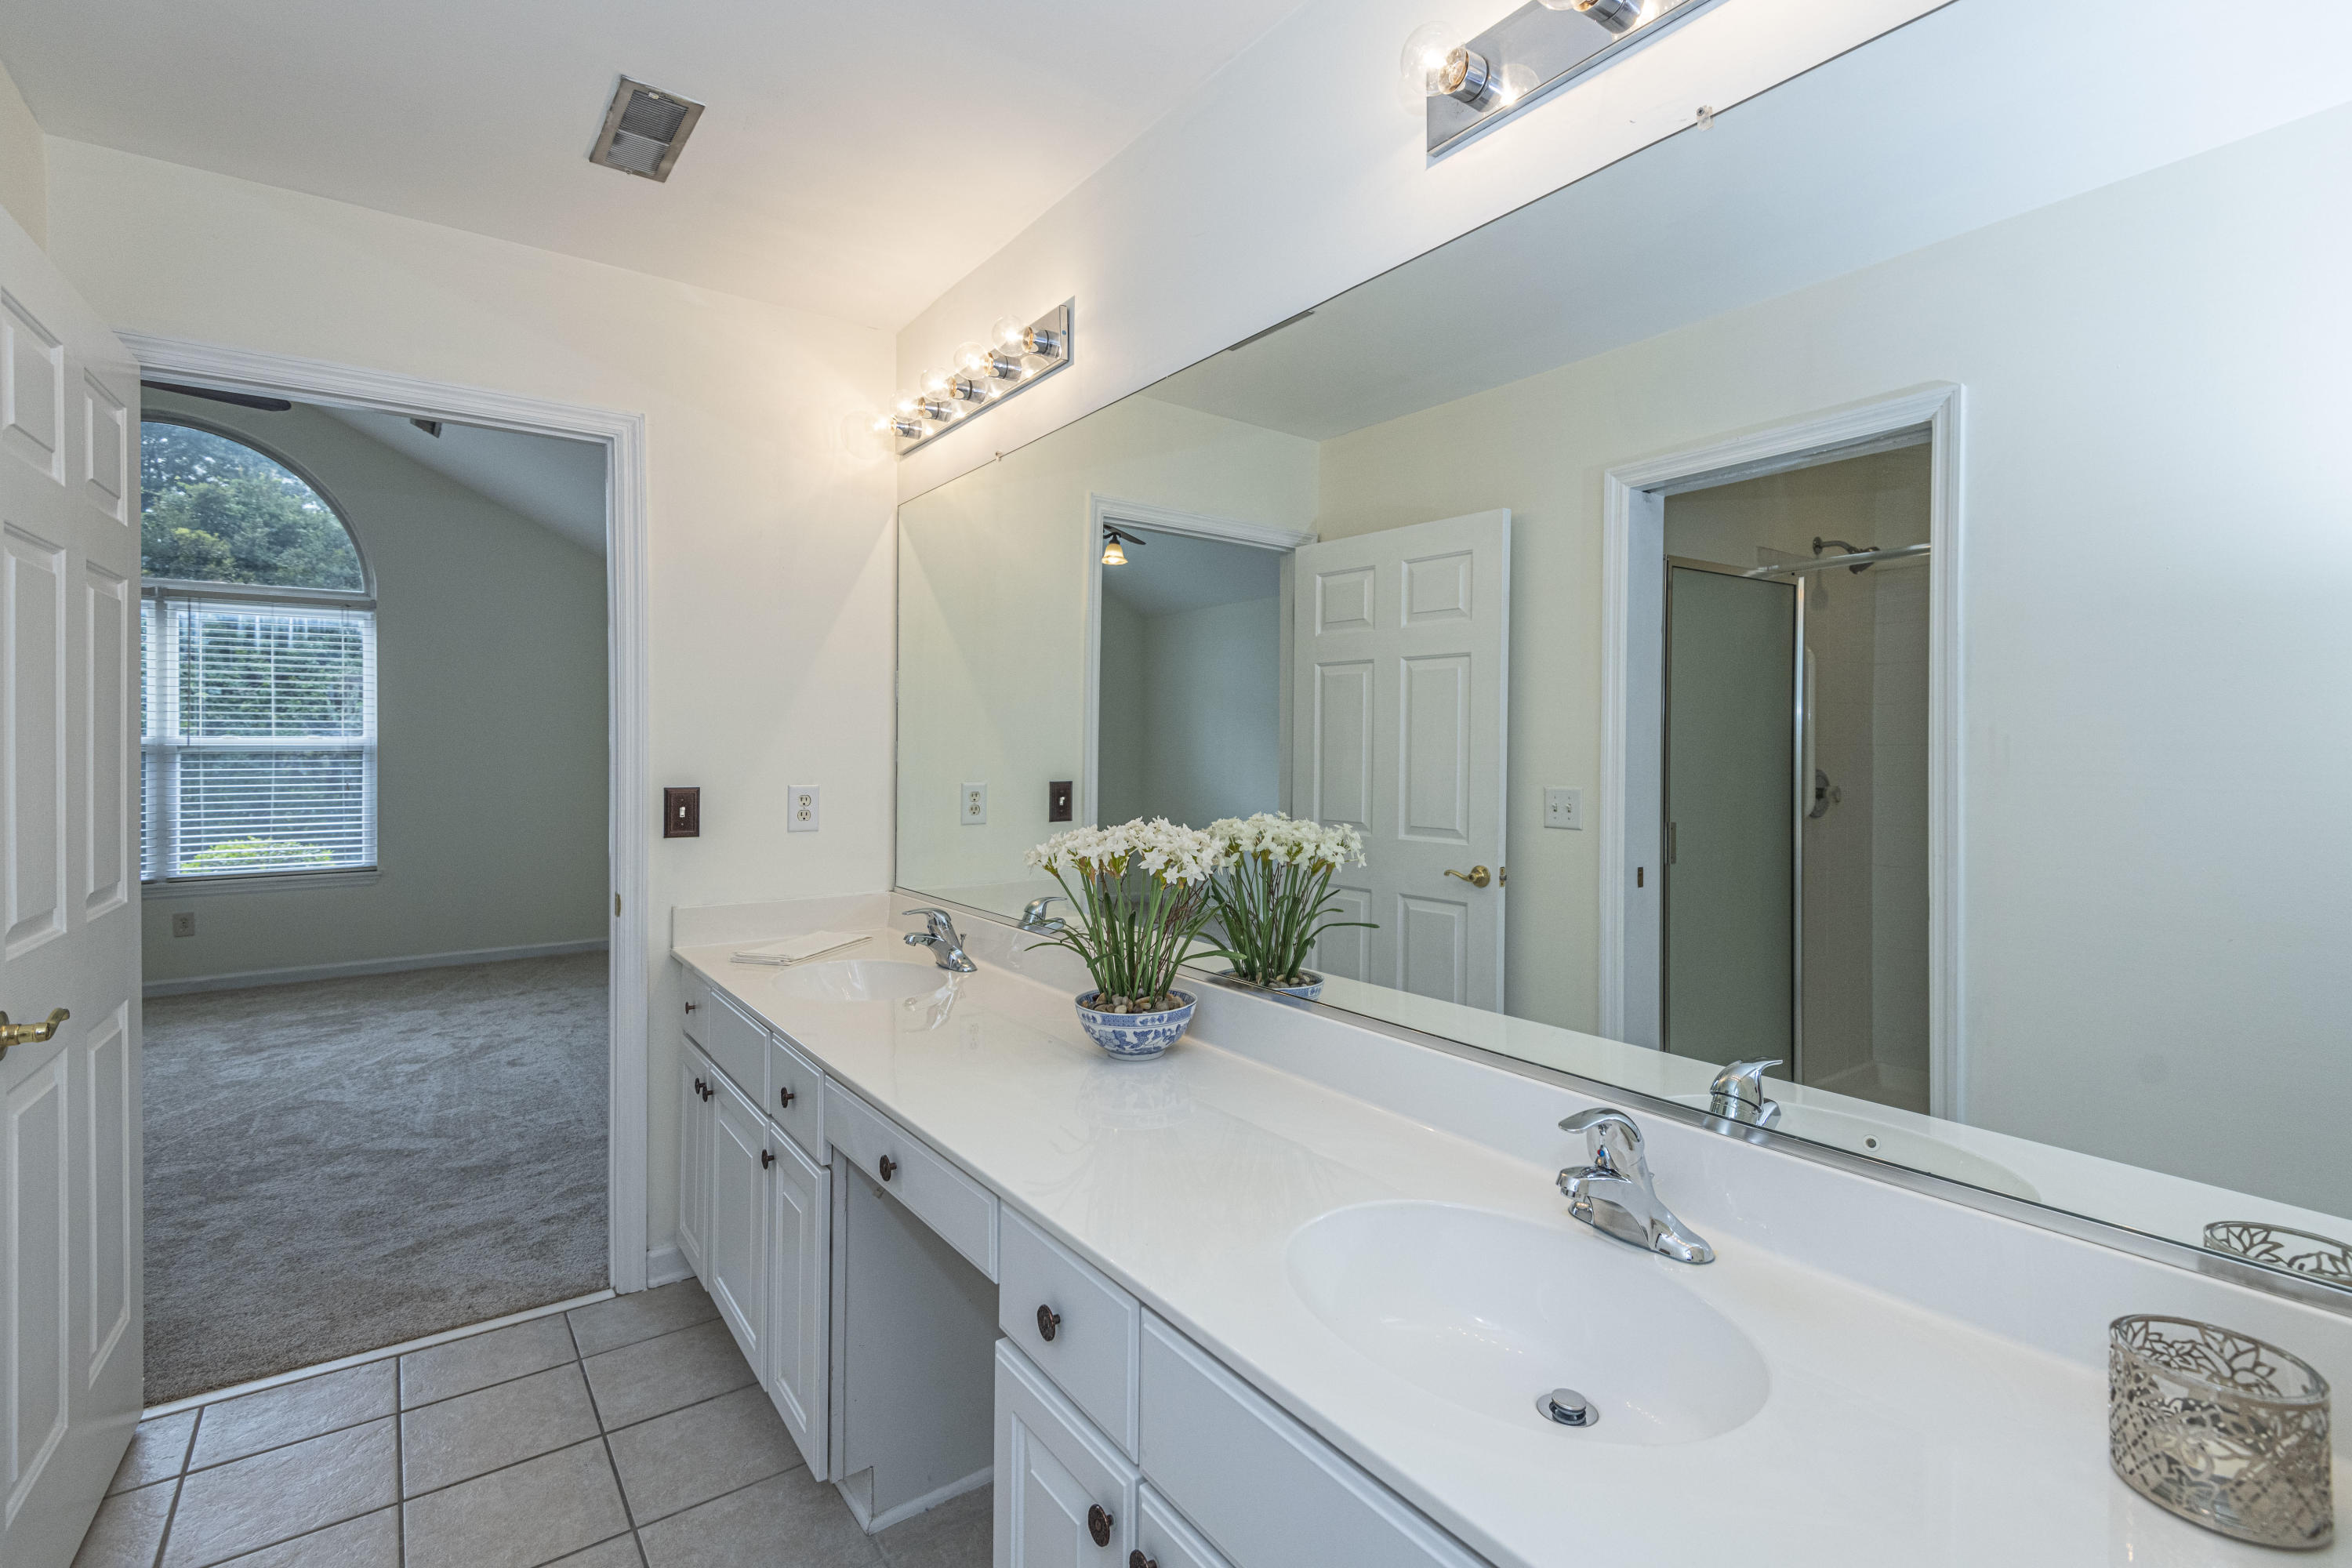 Village at West Ashley Homes For Sale - 3524 Mary Ader, Charleston, SC - 21